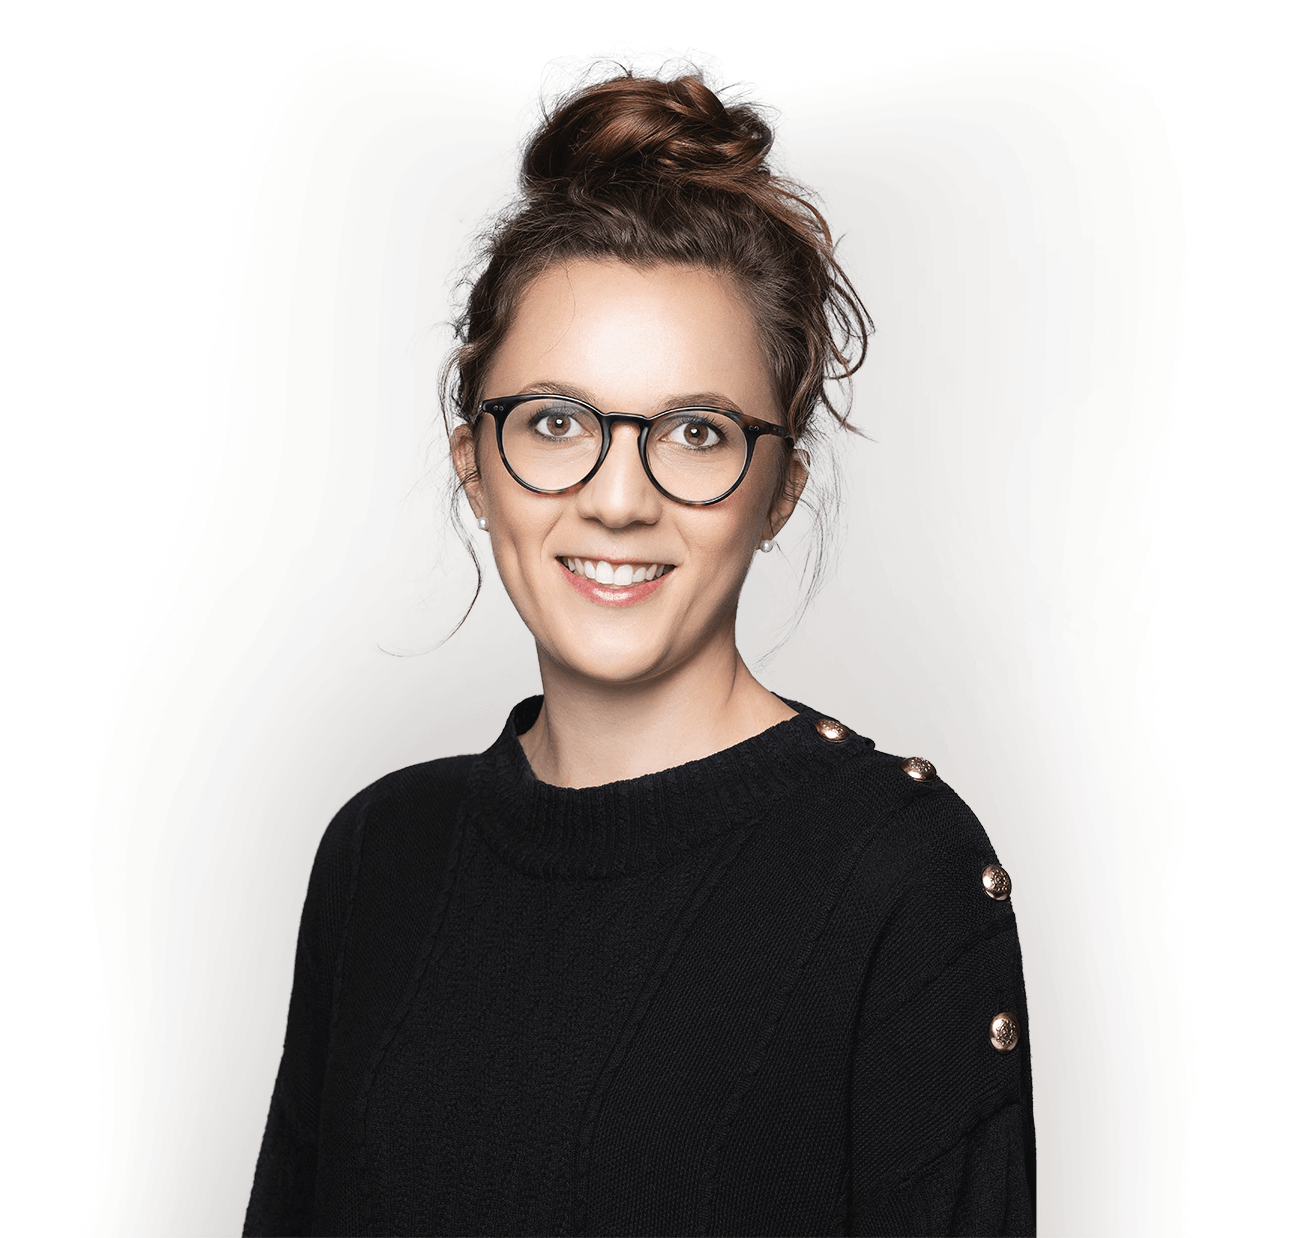 Mathilde Collin, CEO and Co-founder at Front